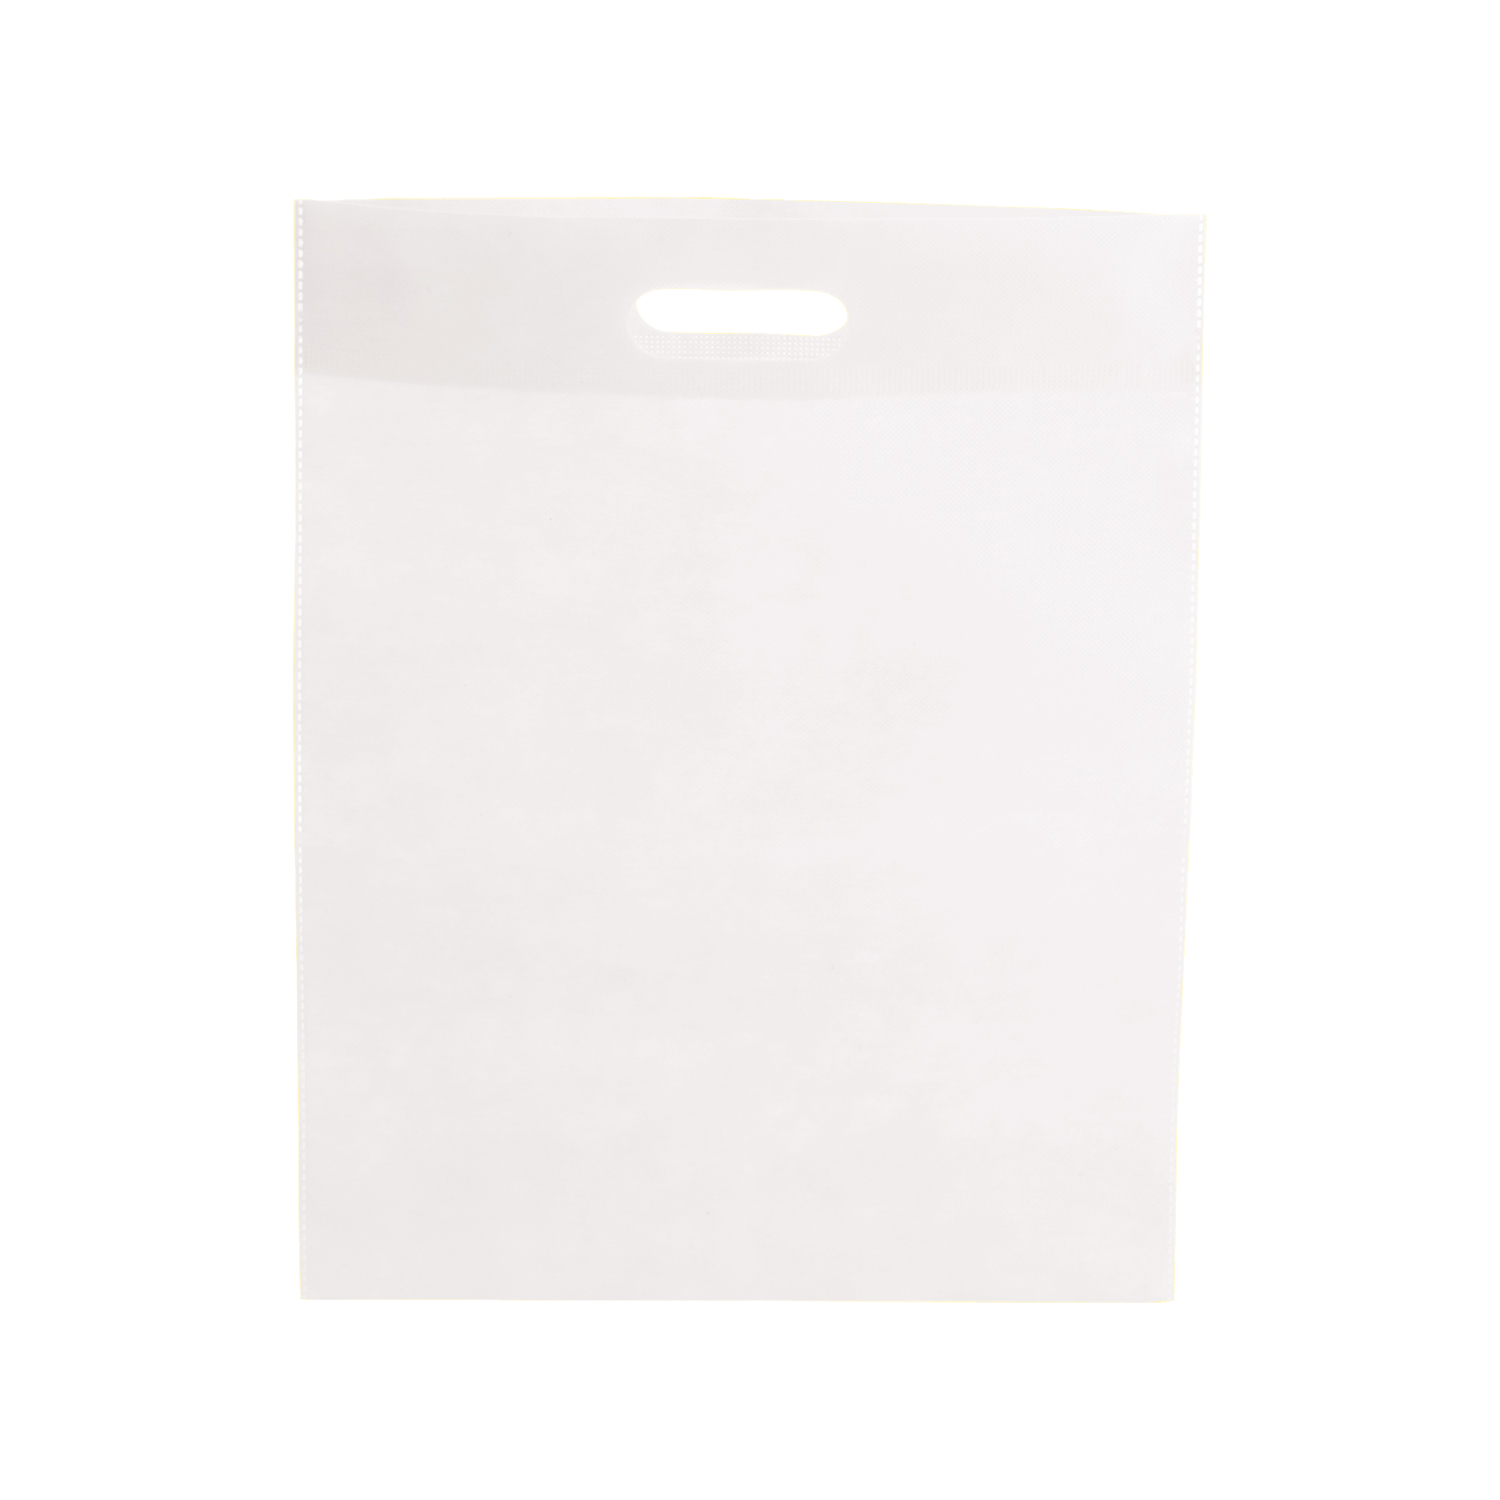 Shopping Bag 022 (Non-woven shopping bag) - hmi17022-02 (White)